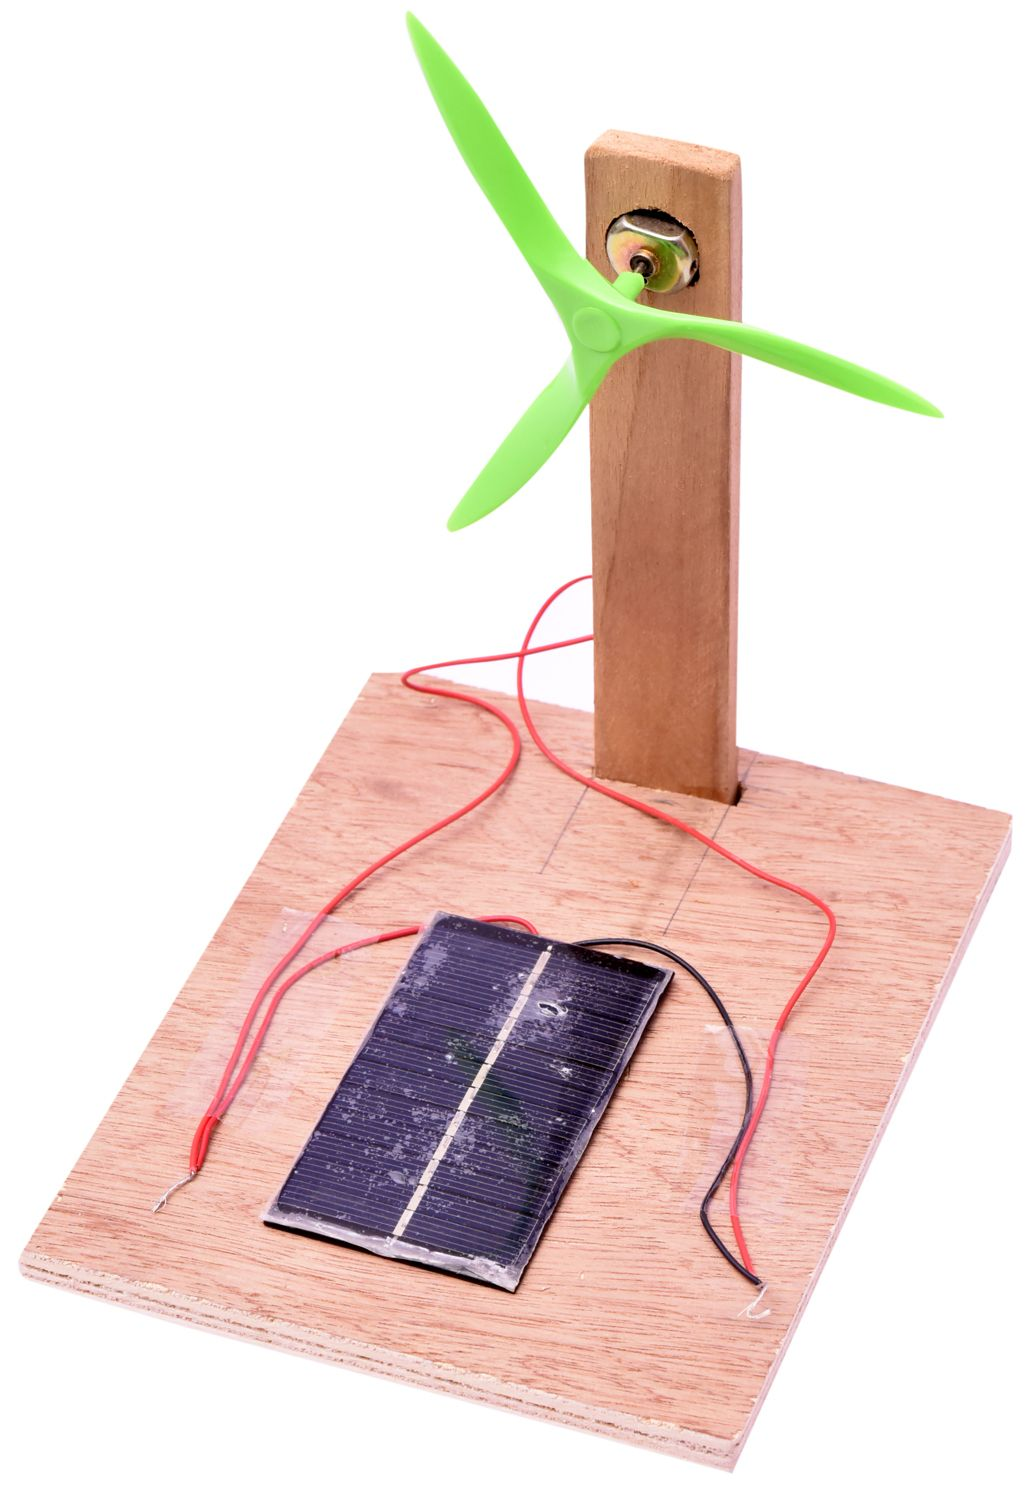 Easy School Projects On Solar Energy And Power